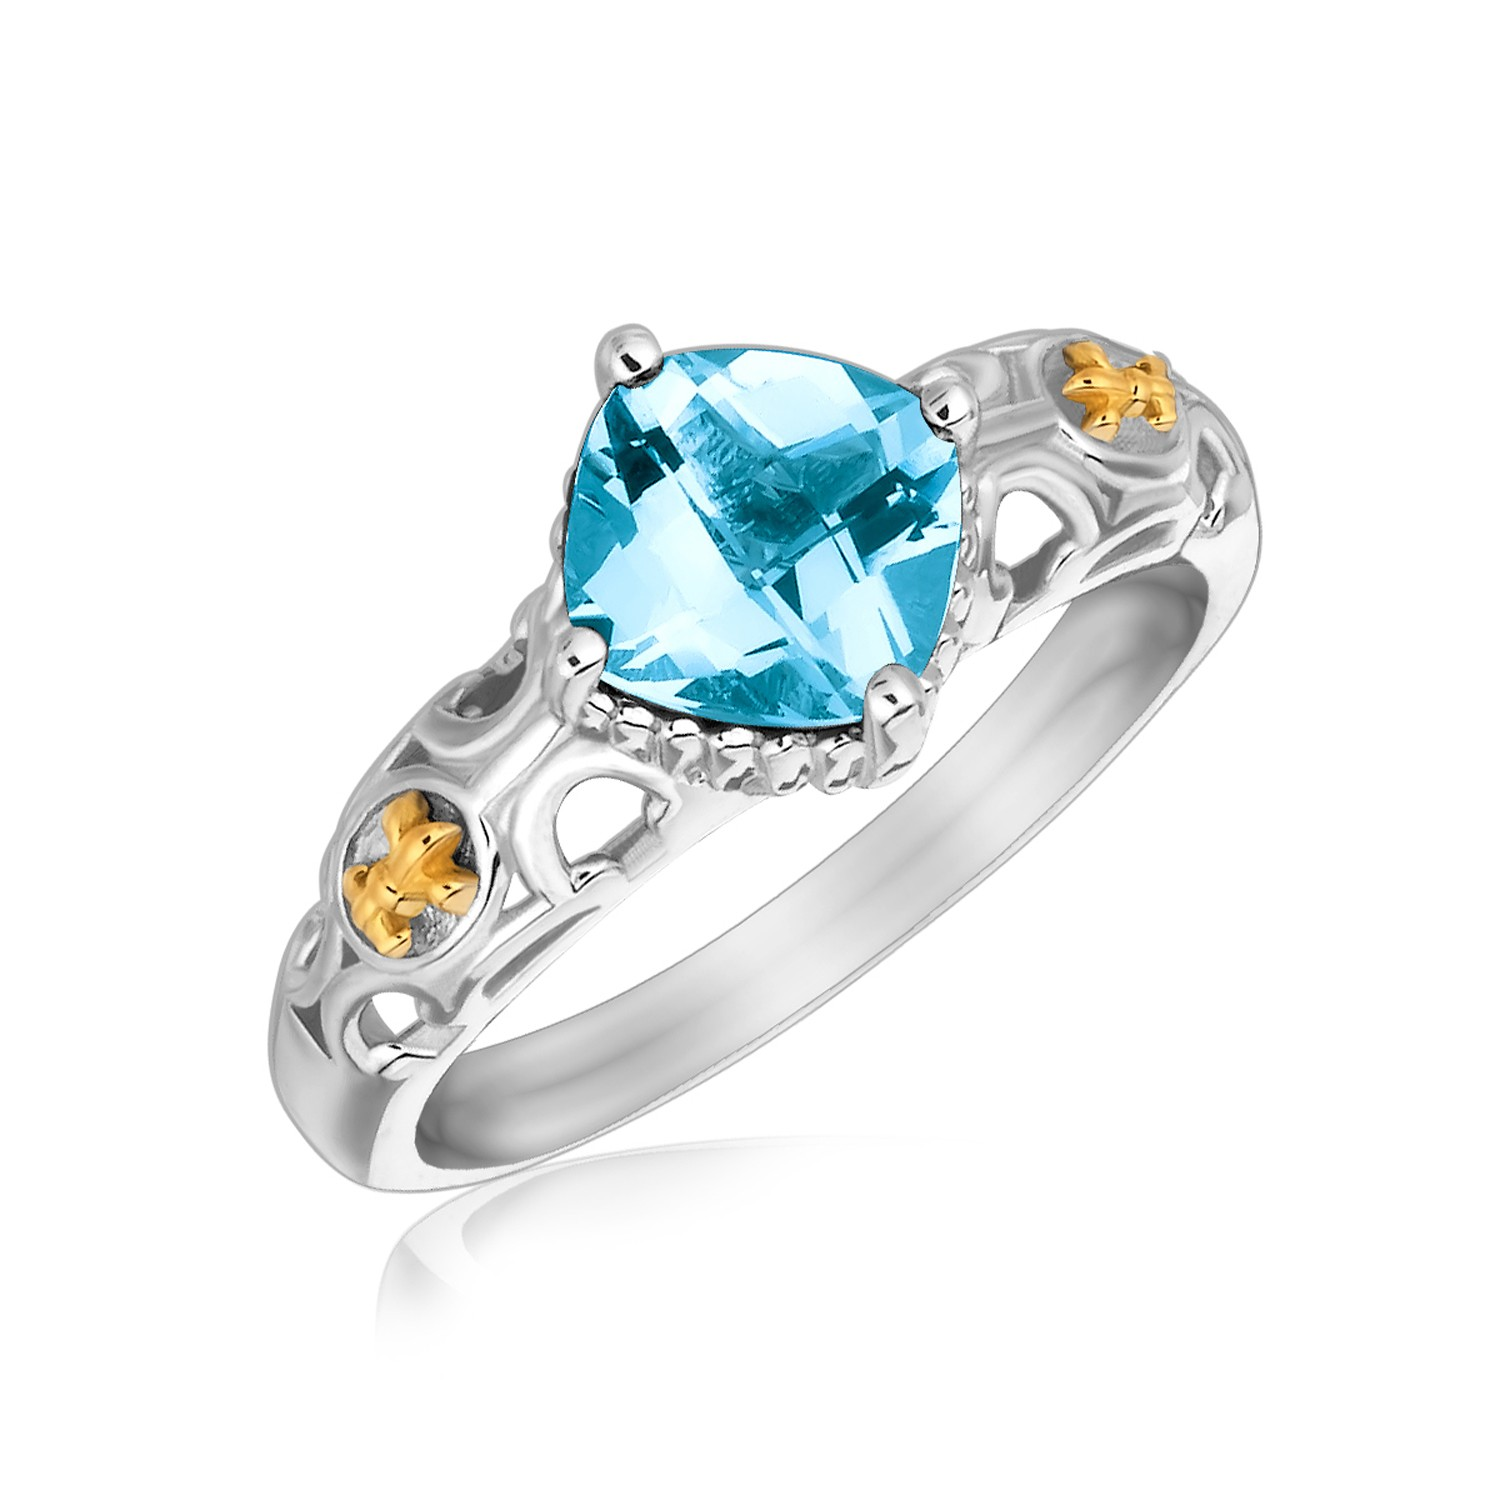 Myriam's Boutique 18K Yellow Gold and Sterling Silver Blue Topaz Ring with Fleur De Lis Accents